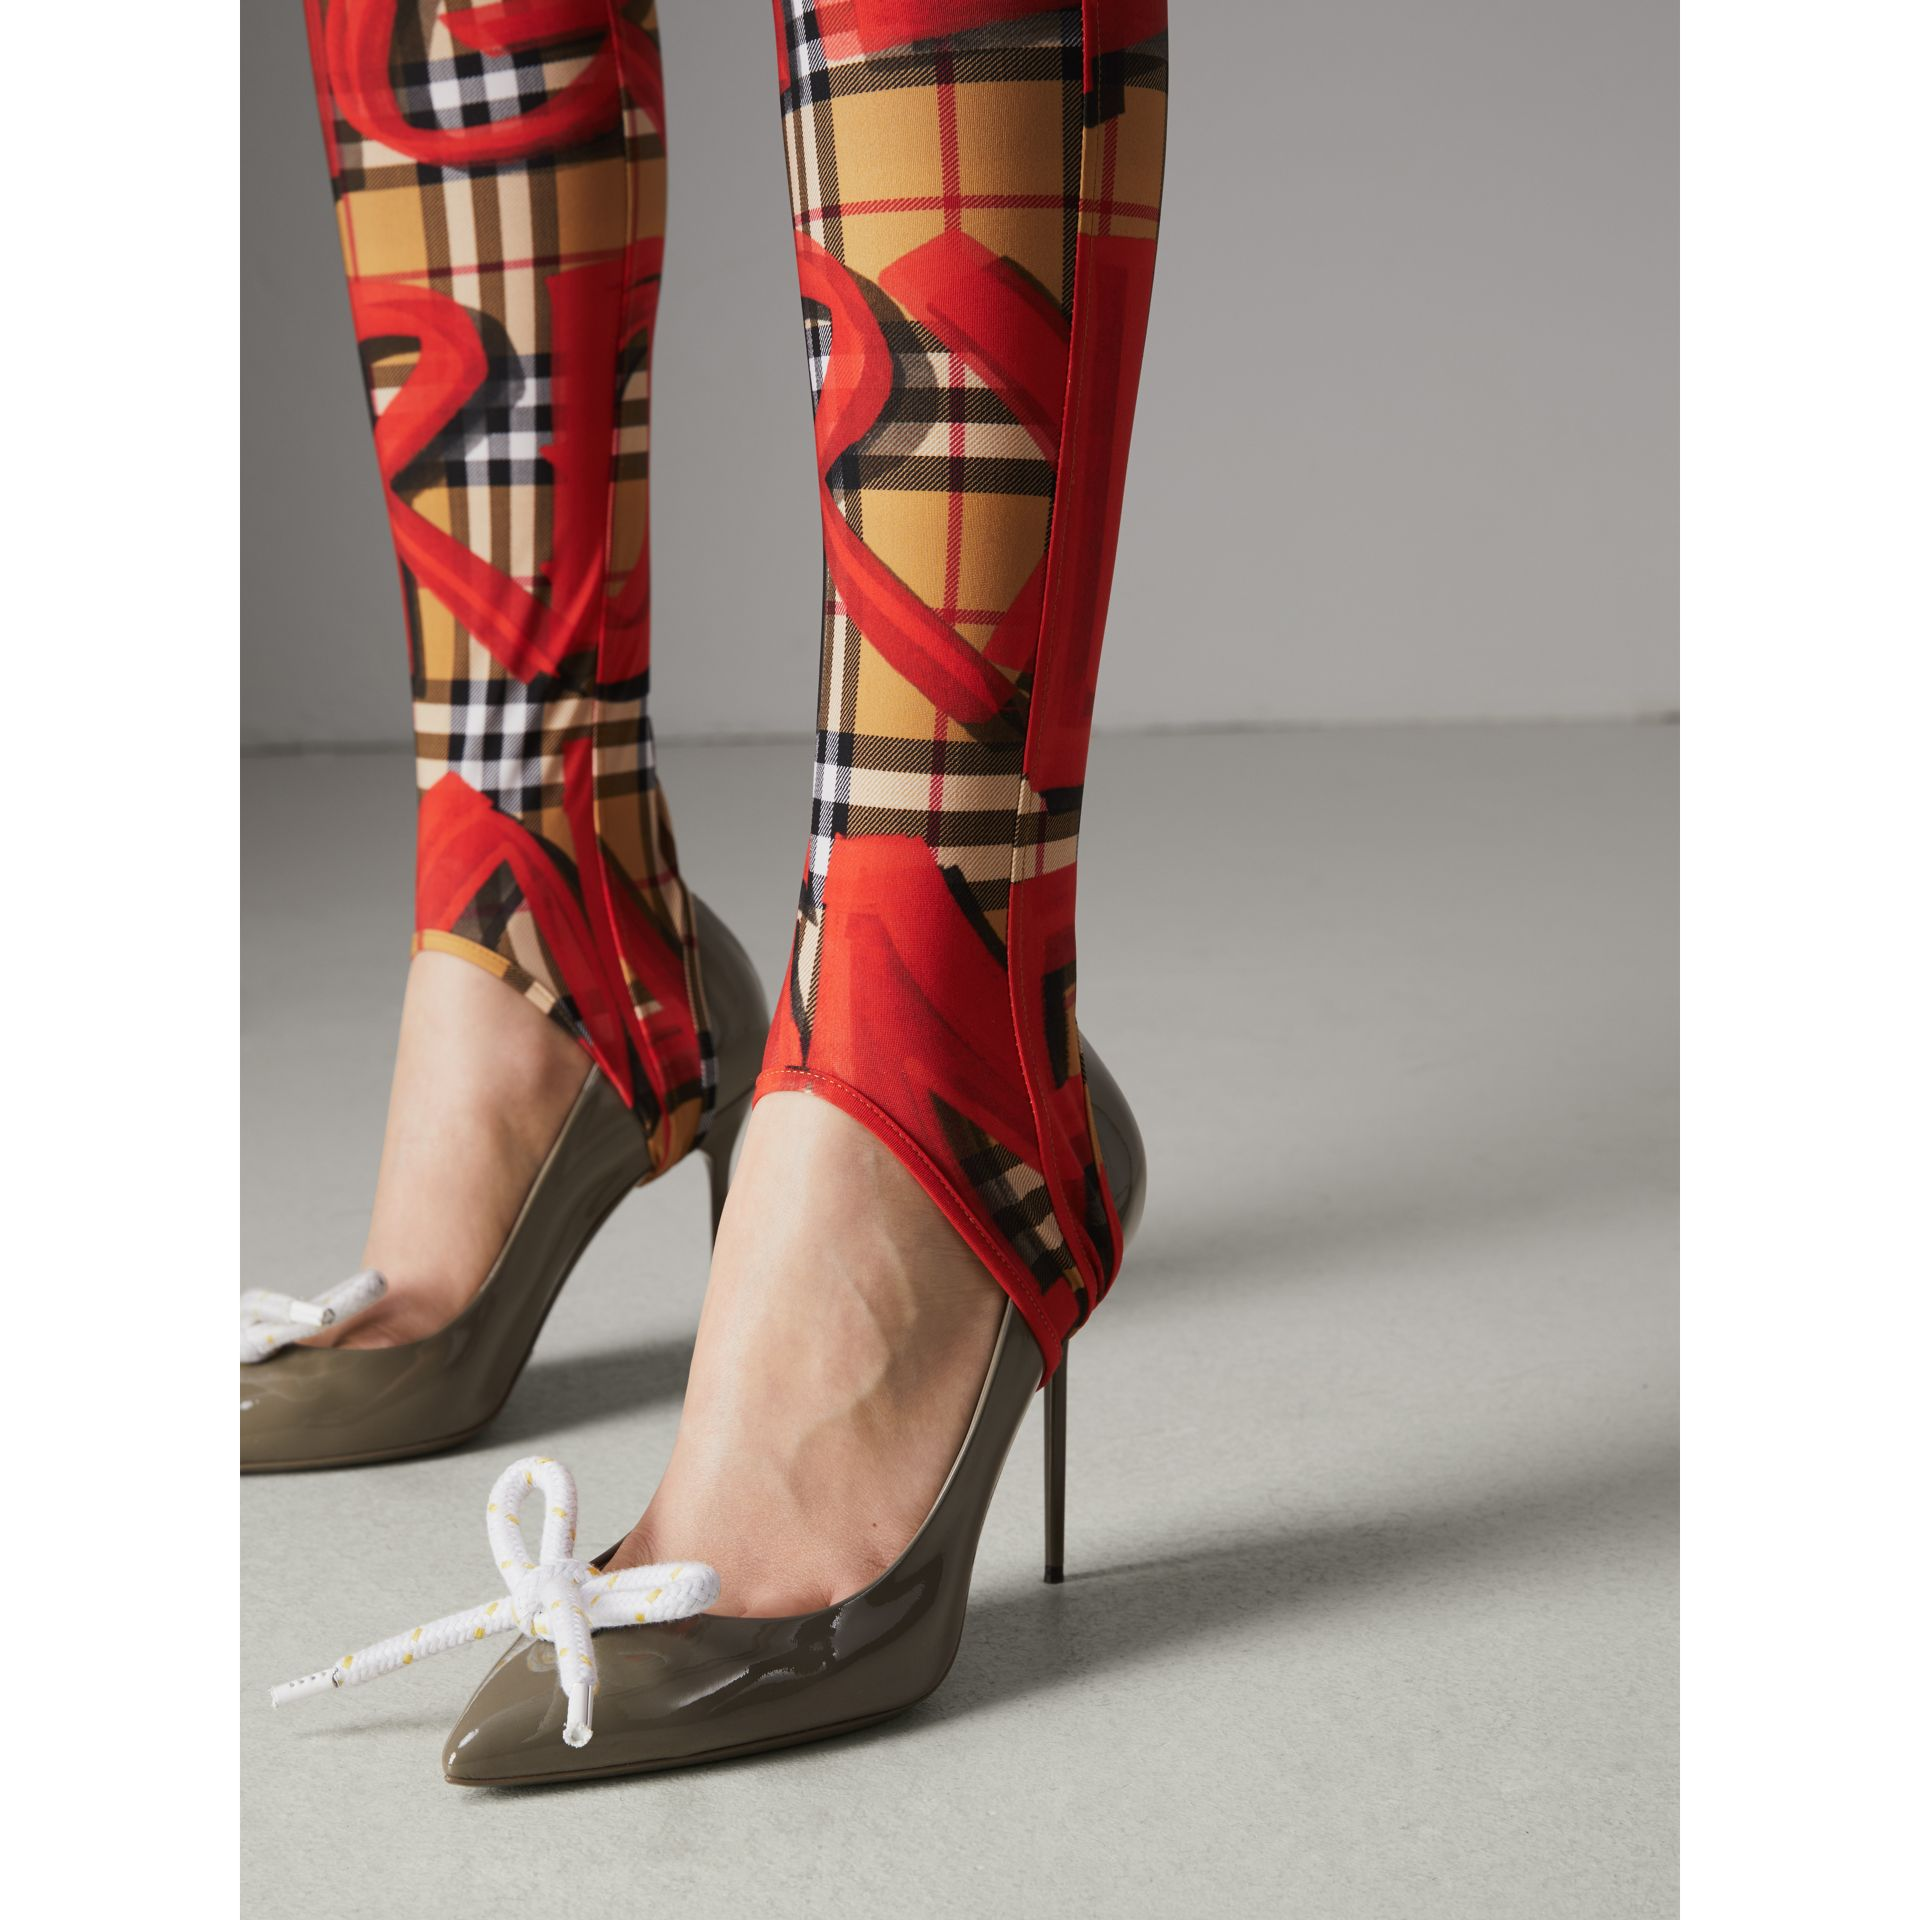 Graffiti Print Leggings in Bright Red - Women | Burberry Singapore - gallery image 1